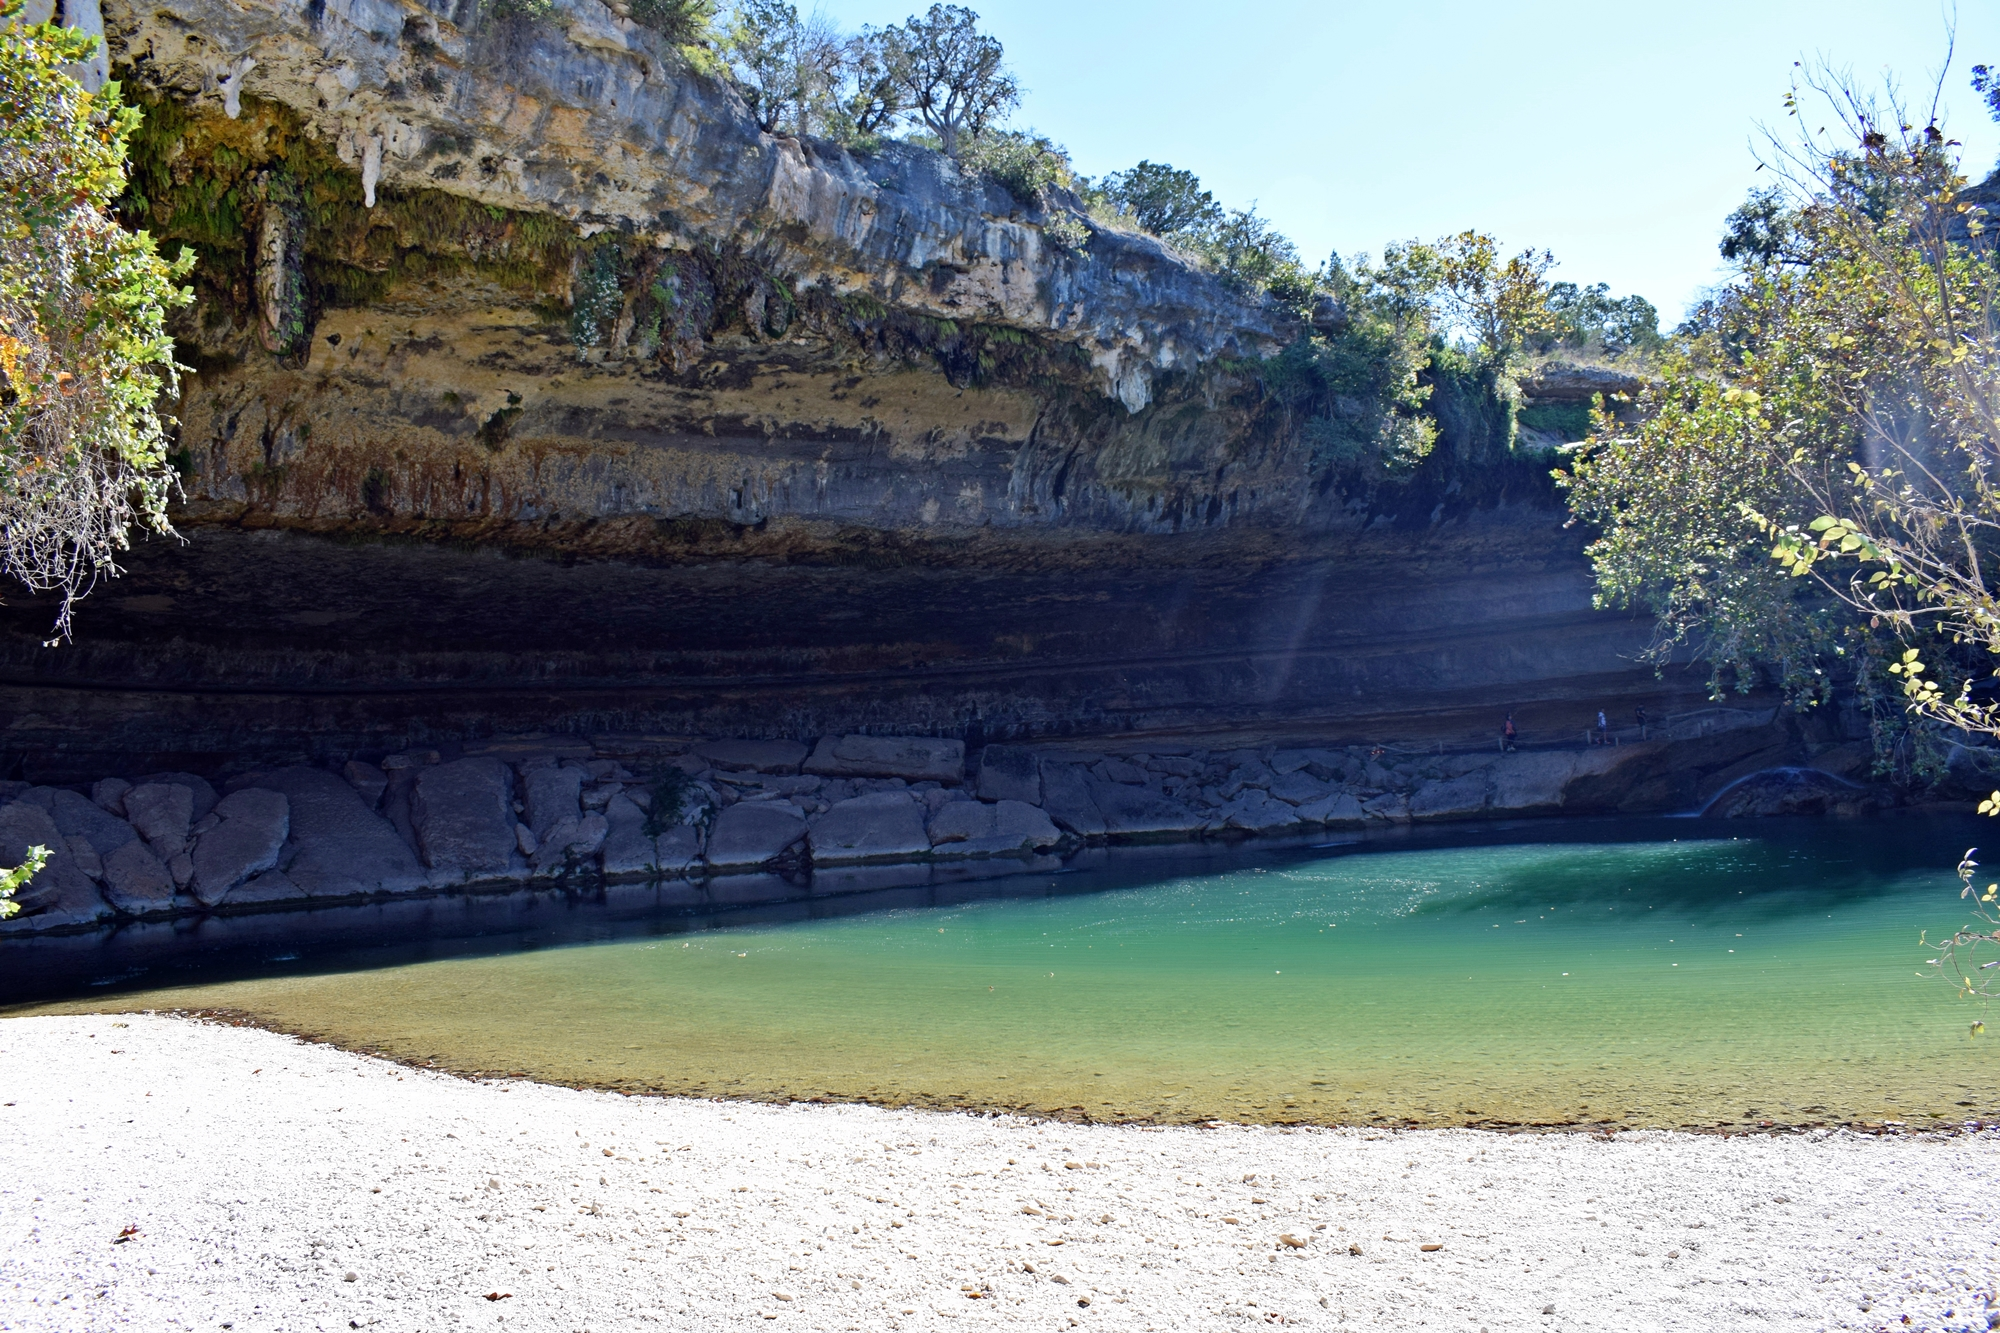 We spent the afternoon hiking to the waterfalls pool and grotto at Hamilton Pool Preserve Heres some great tips if you go